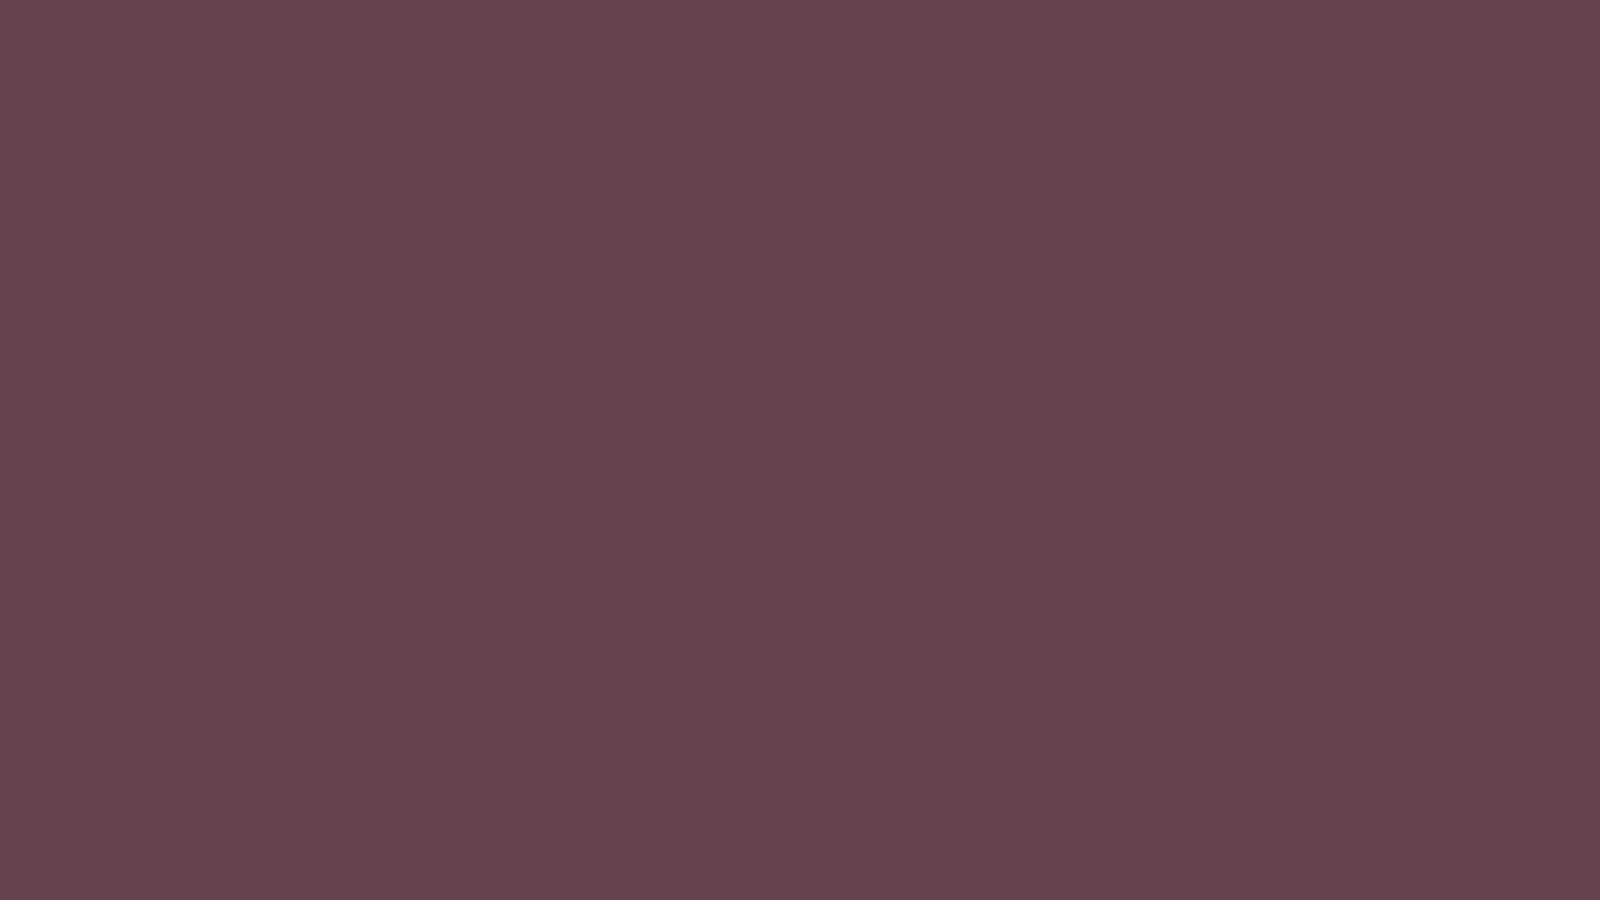 1600x900 Deep Tuscan Red Solid Color Background